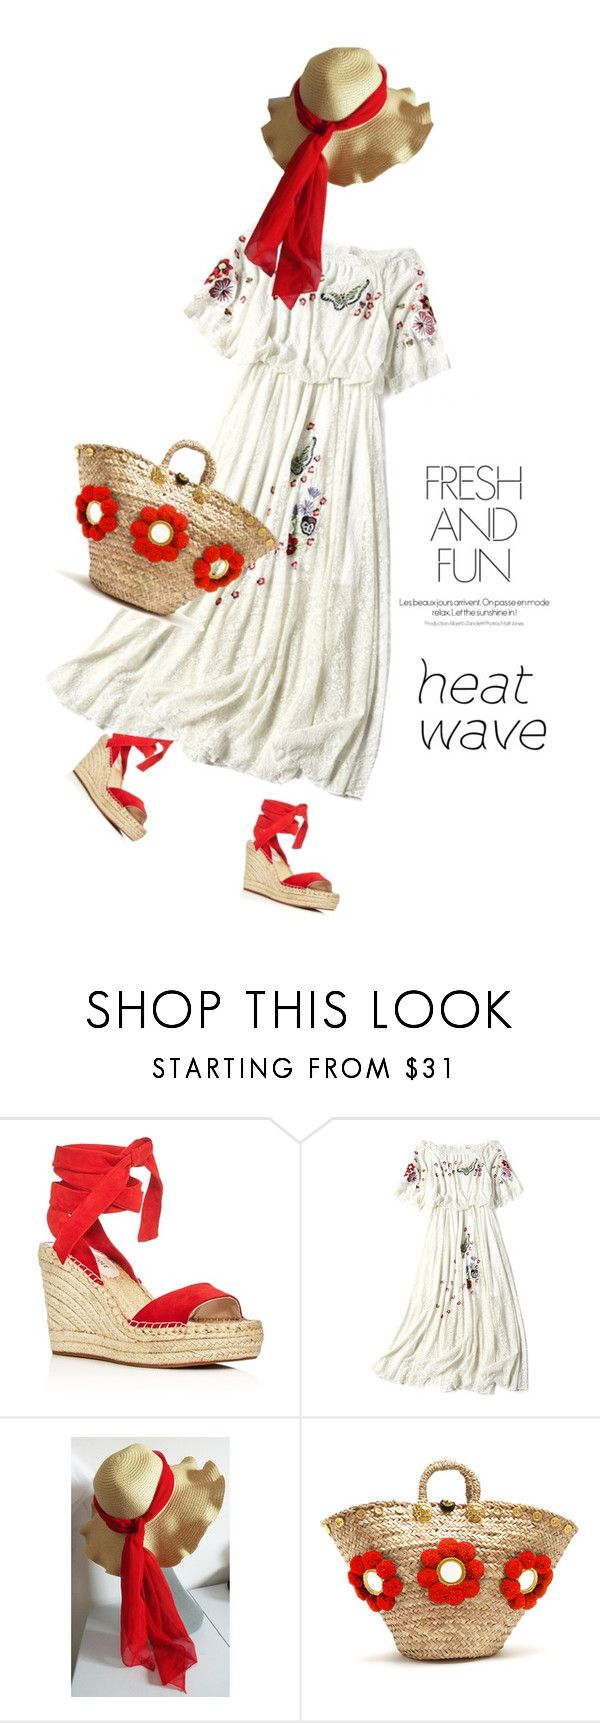 """Fun And fresh #767"" by meryflower ❤ liked on Polyvore featuring Kenneth Cole, Muzungu Sisters and heatwave"